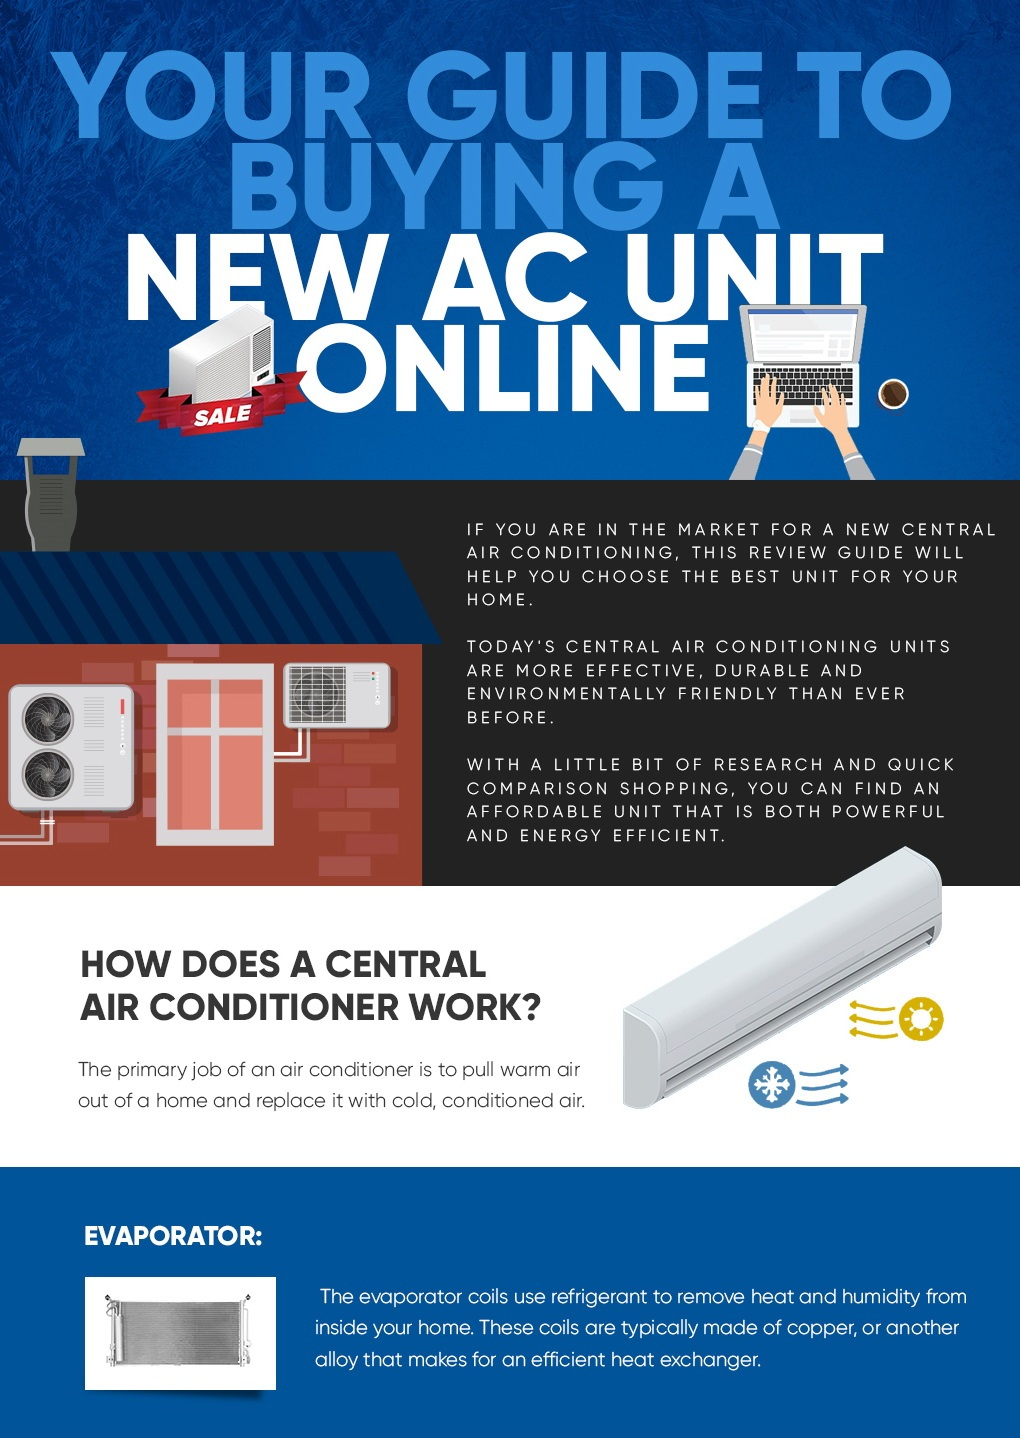 Your Guide To Buying A New AC Unit Online Infographic